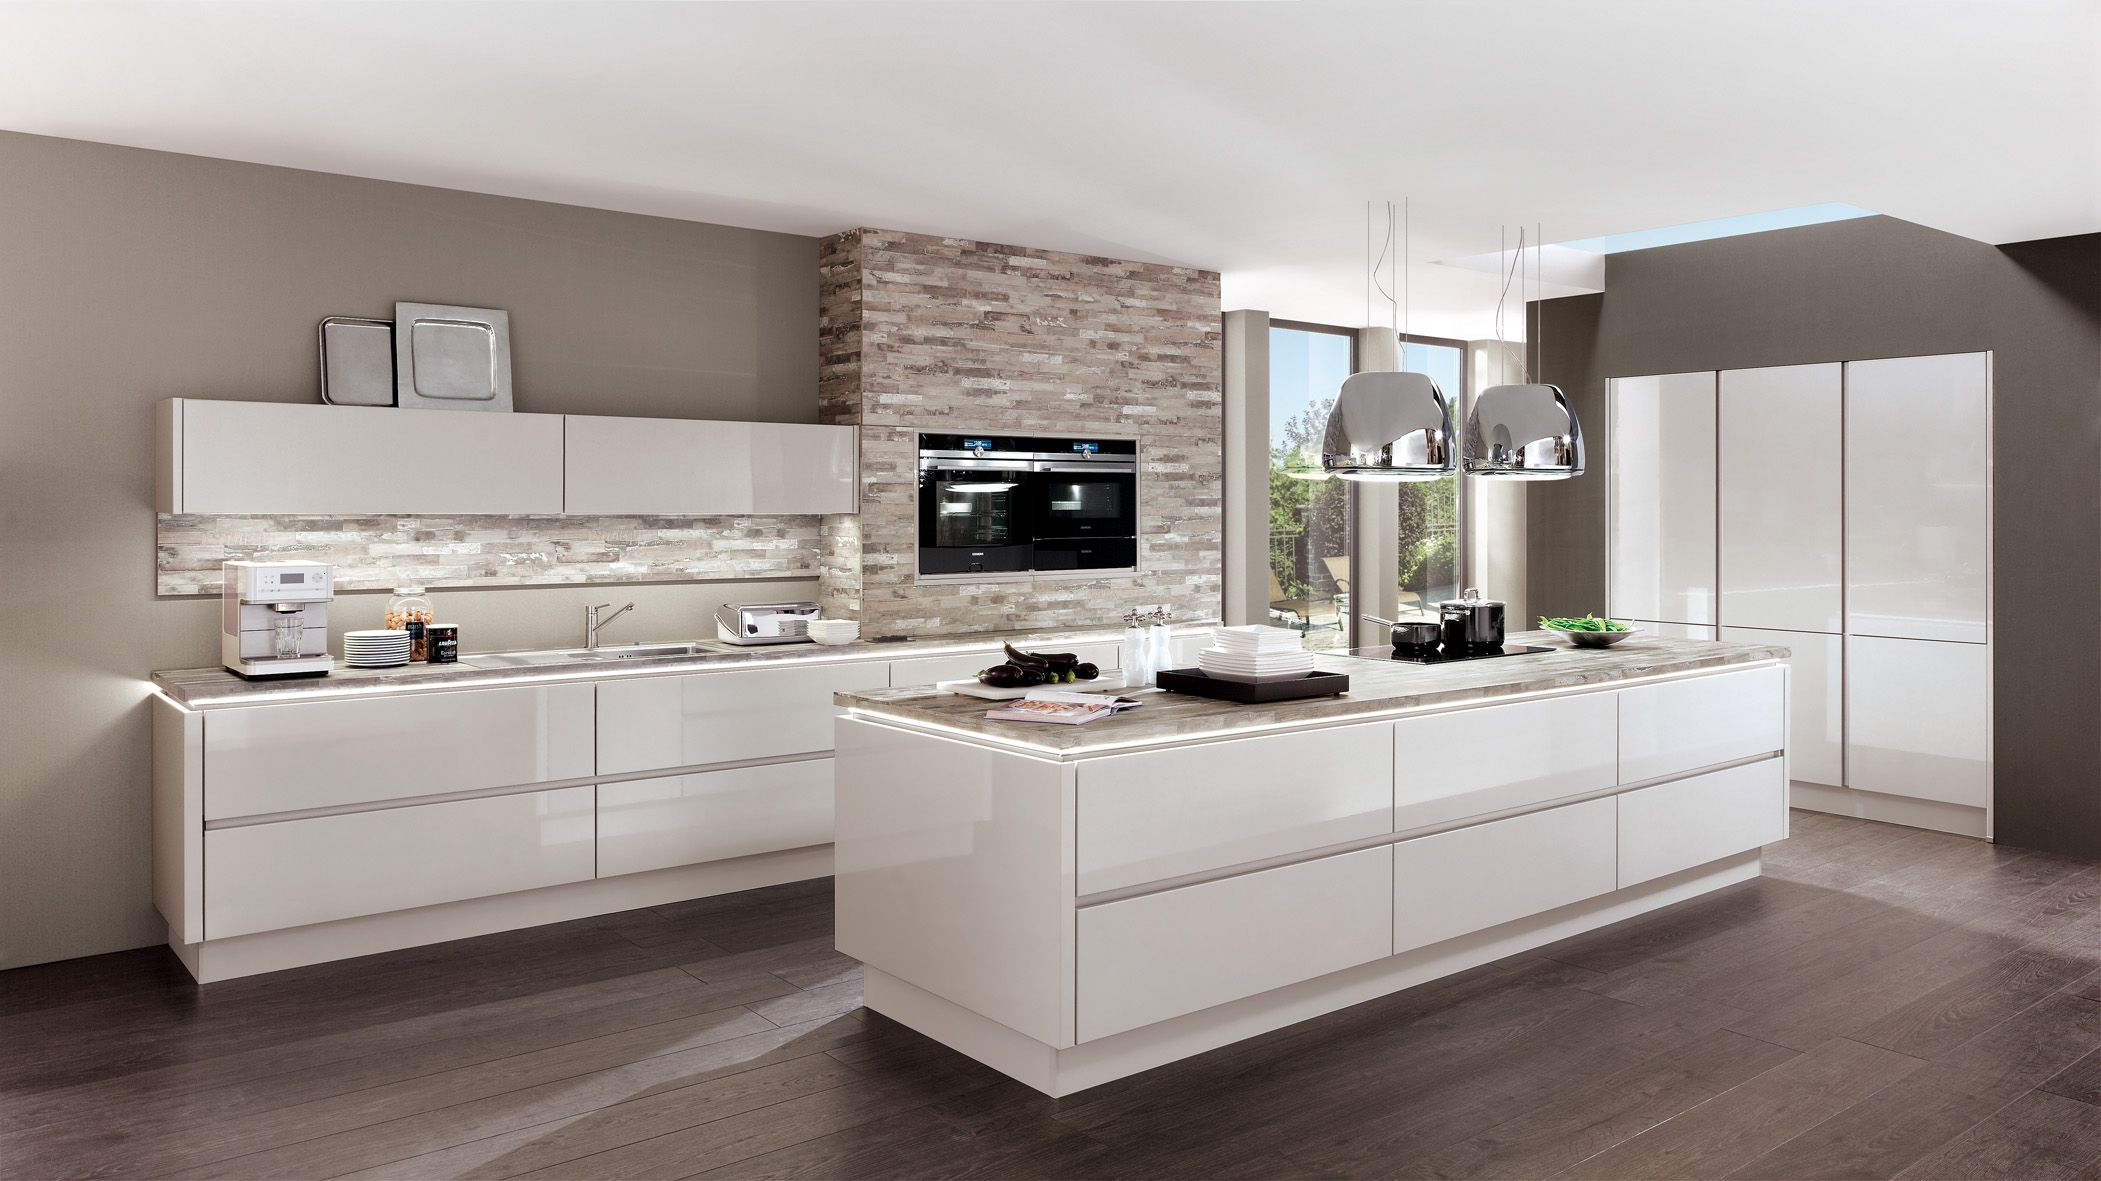 The ultimate in high gloss lacquer finishes, the LUX kitchen is sure to make a startement in any home. Price Guide $22,500 to $27,500